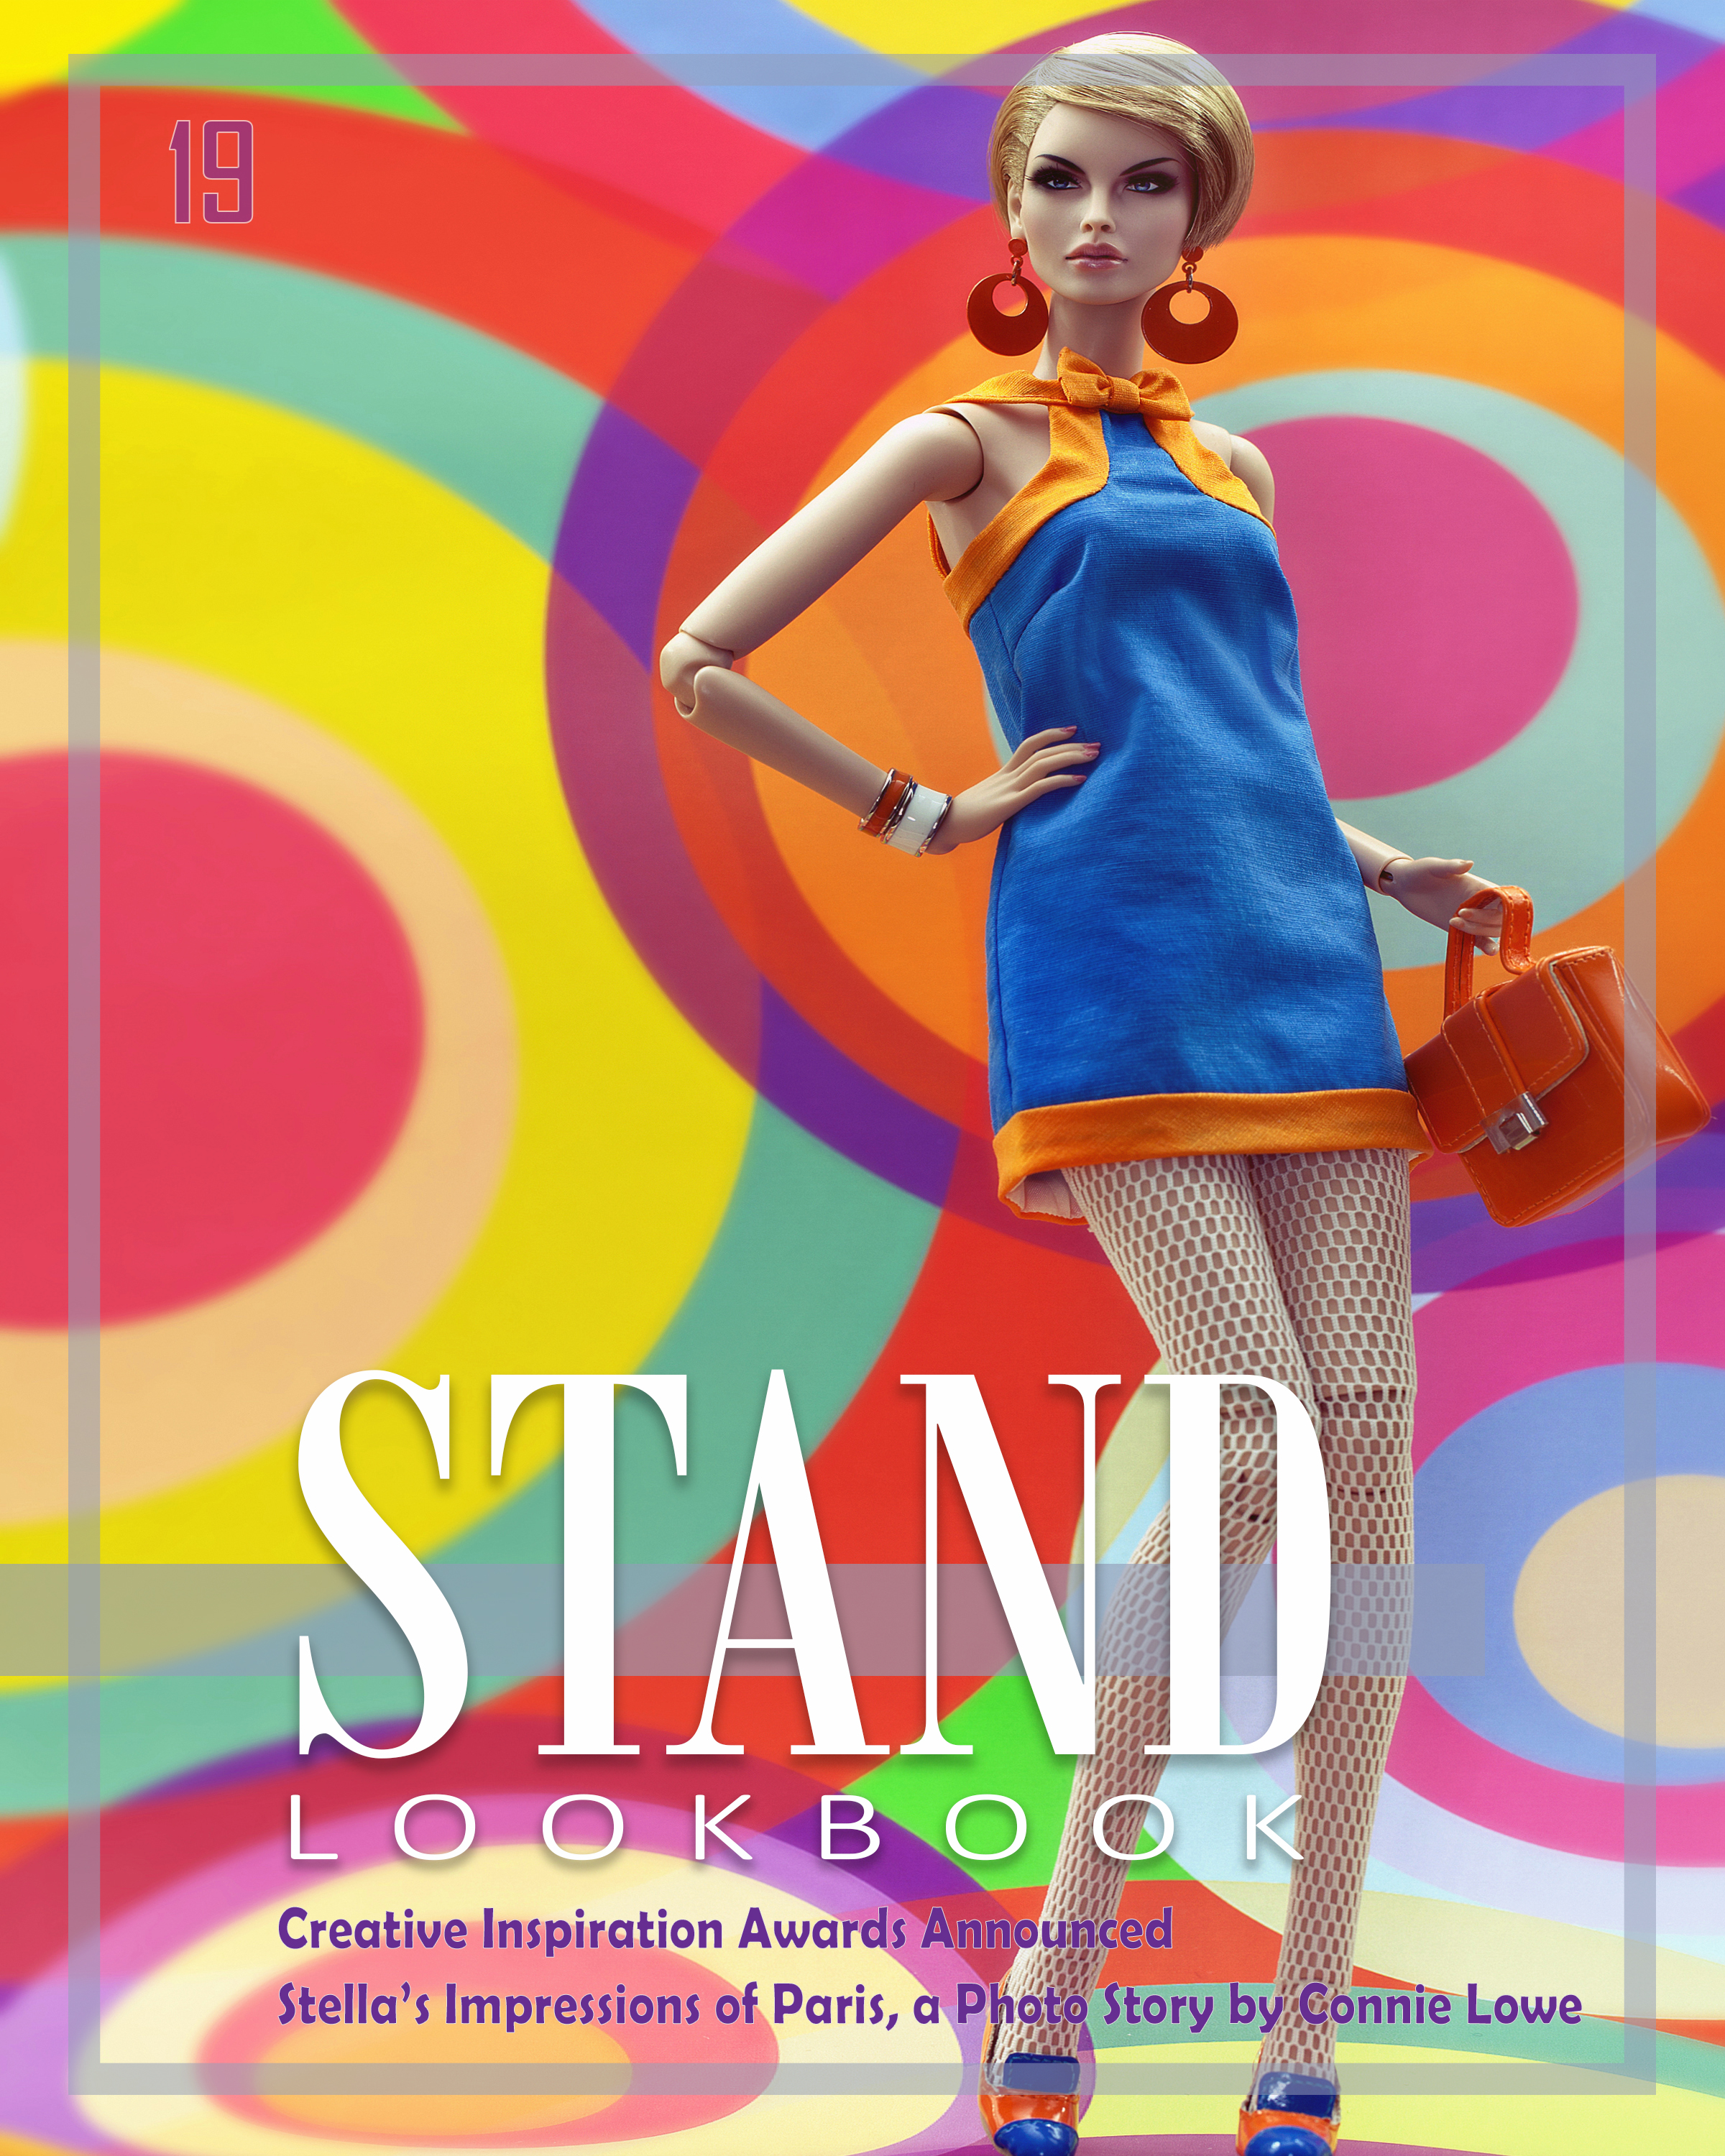 STAND Fashion Cover ISSUE 19 JPEG.jpg